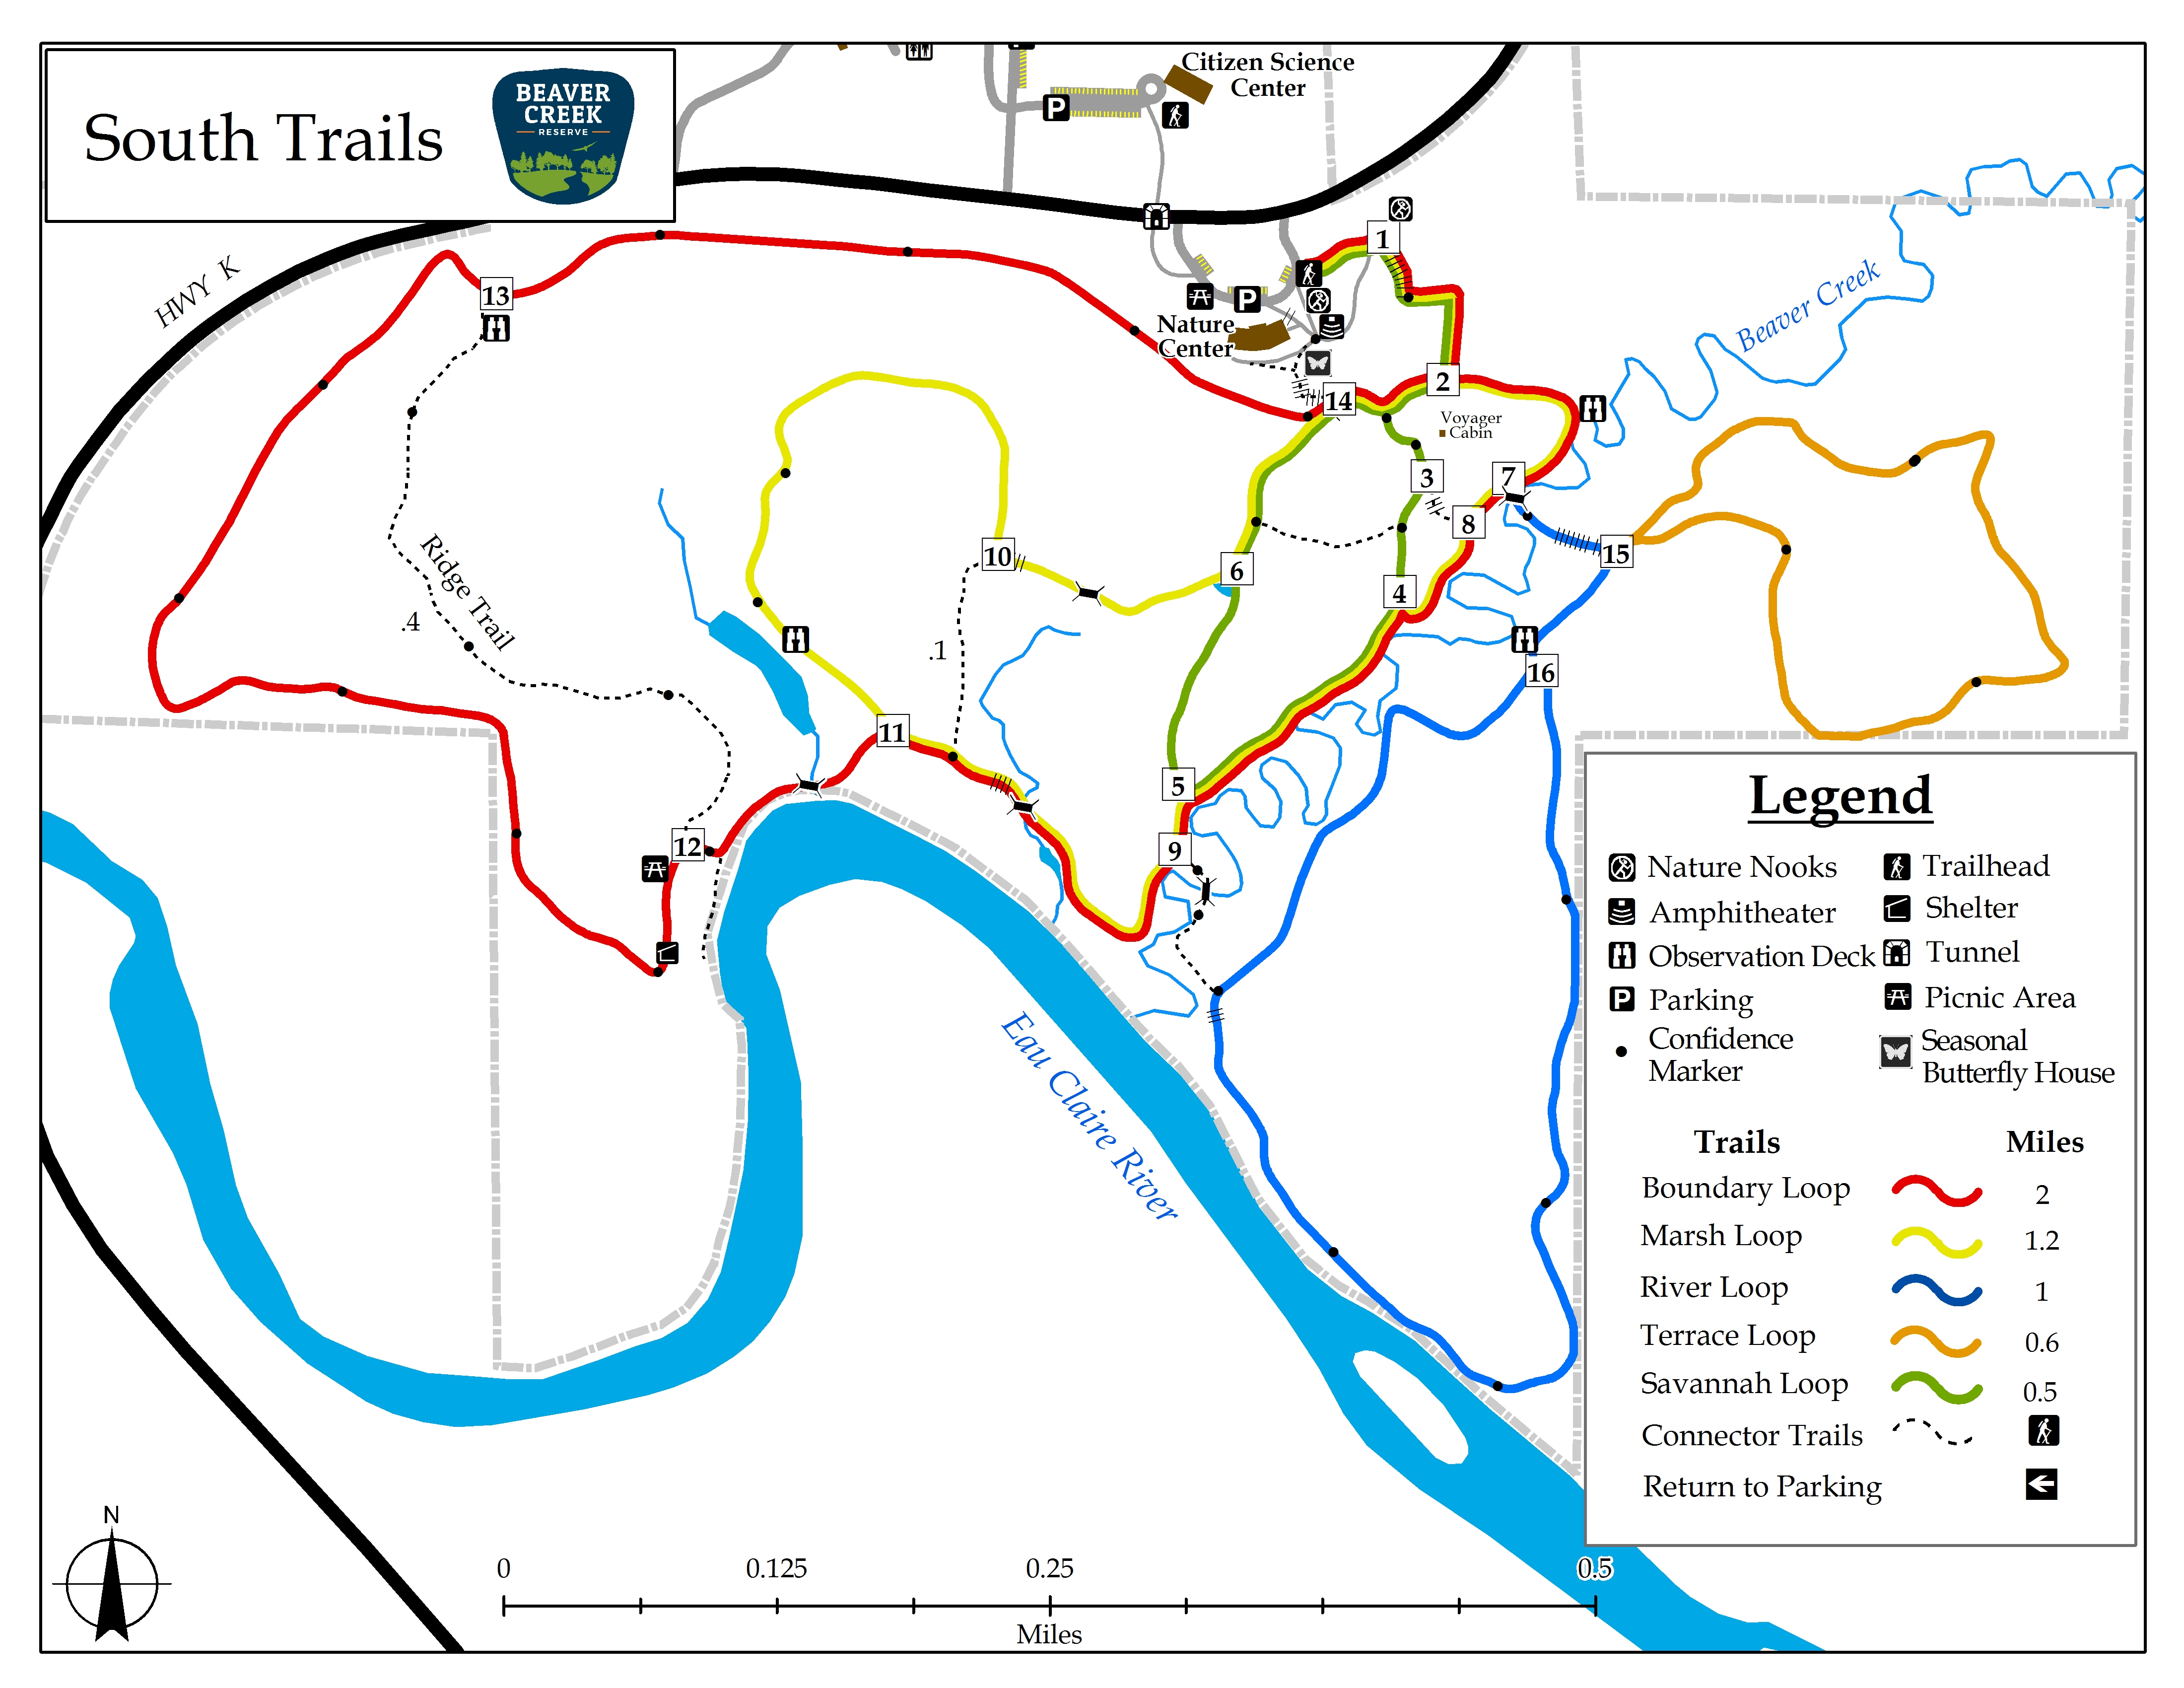 Trails Maps At Beaver Creek Reserve Wisconsin Nature Reserve - Beavercreek trail map